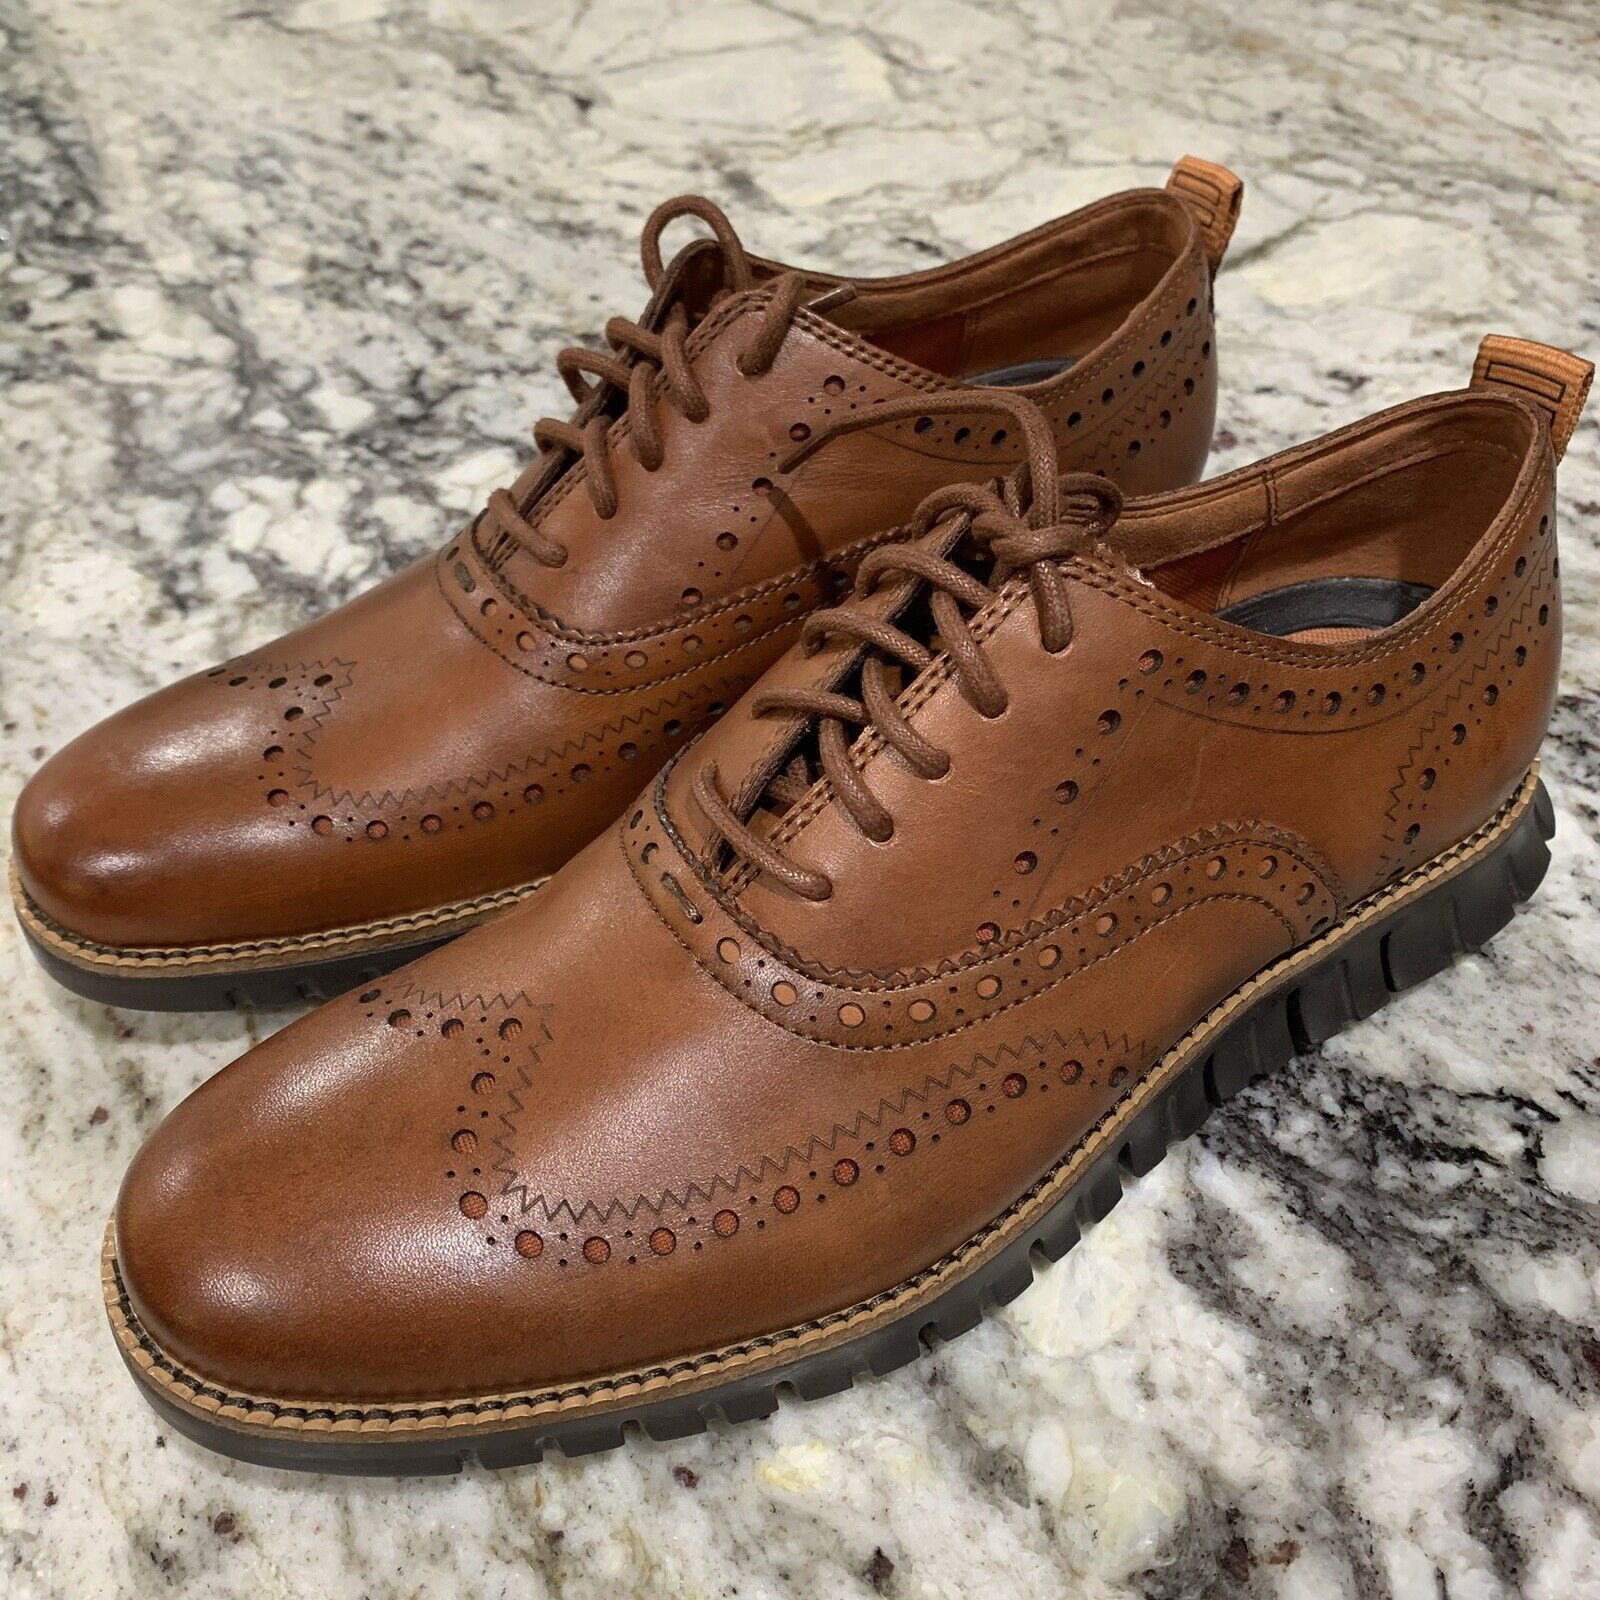 Cole Haan zerogrand Bout D'Aile Oxford in British Tan Dark Java Sz US 8.5 Hommes C24964